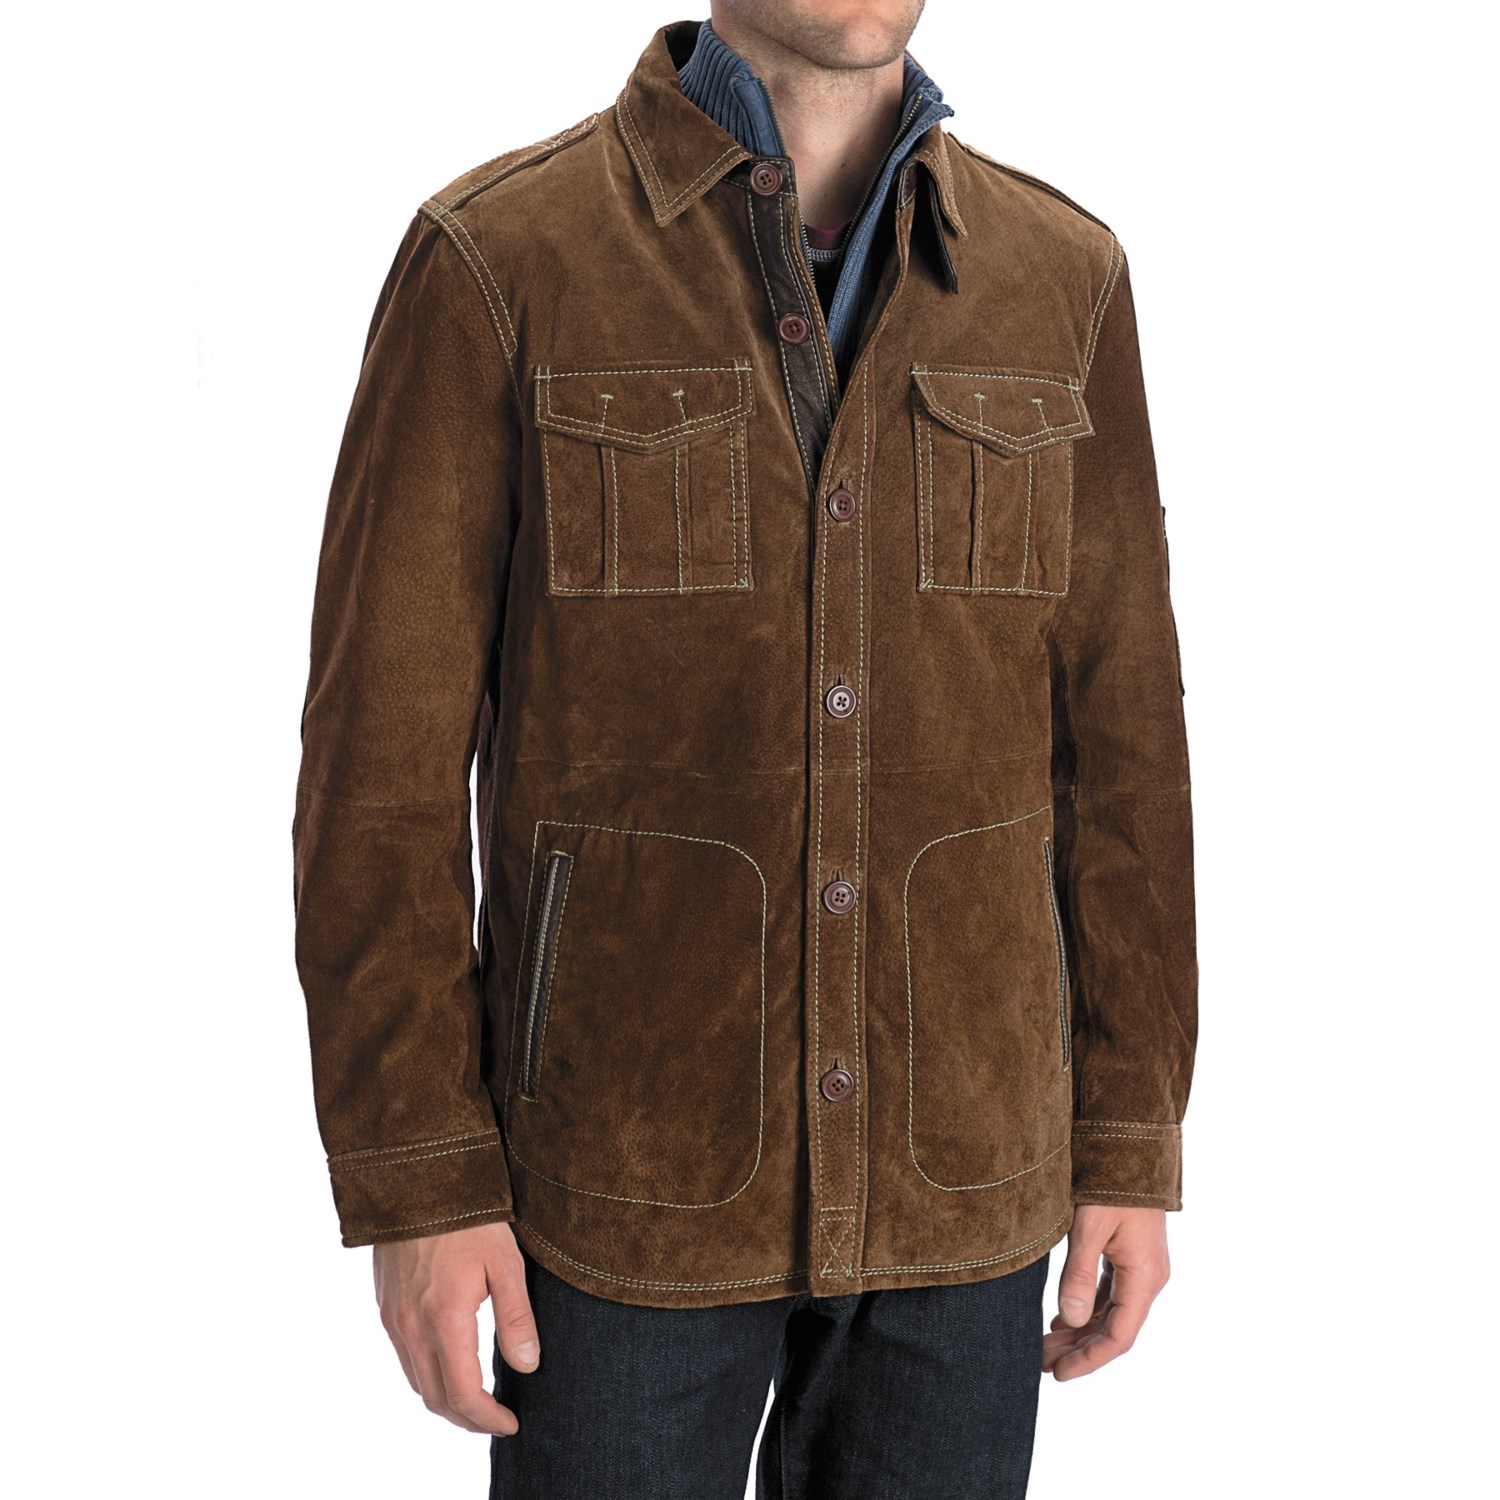 Worn Shirt Jacket Suede For Men Save 54